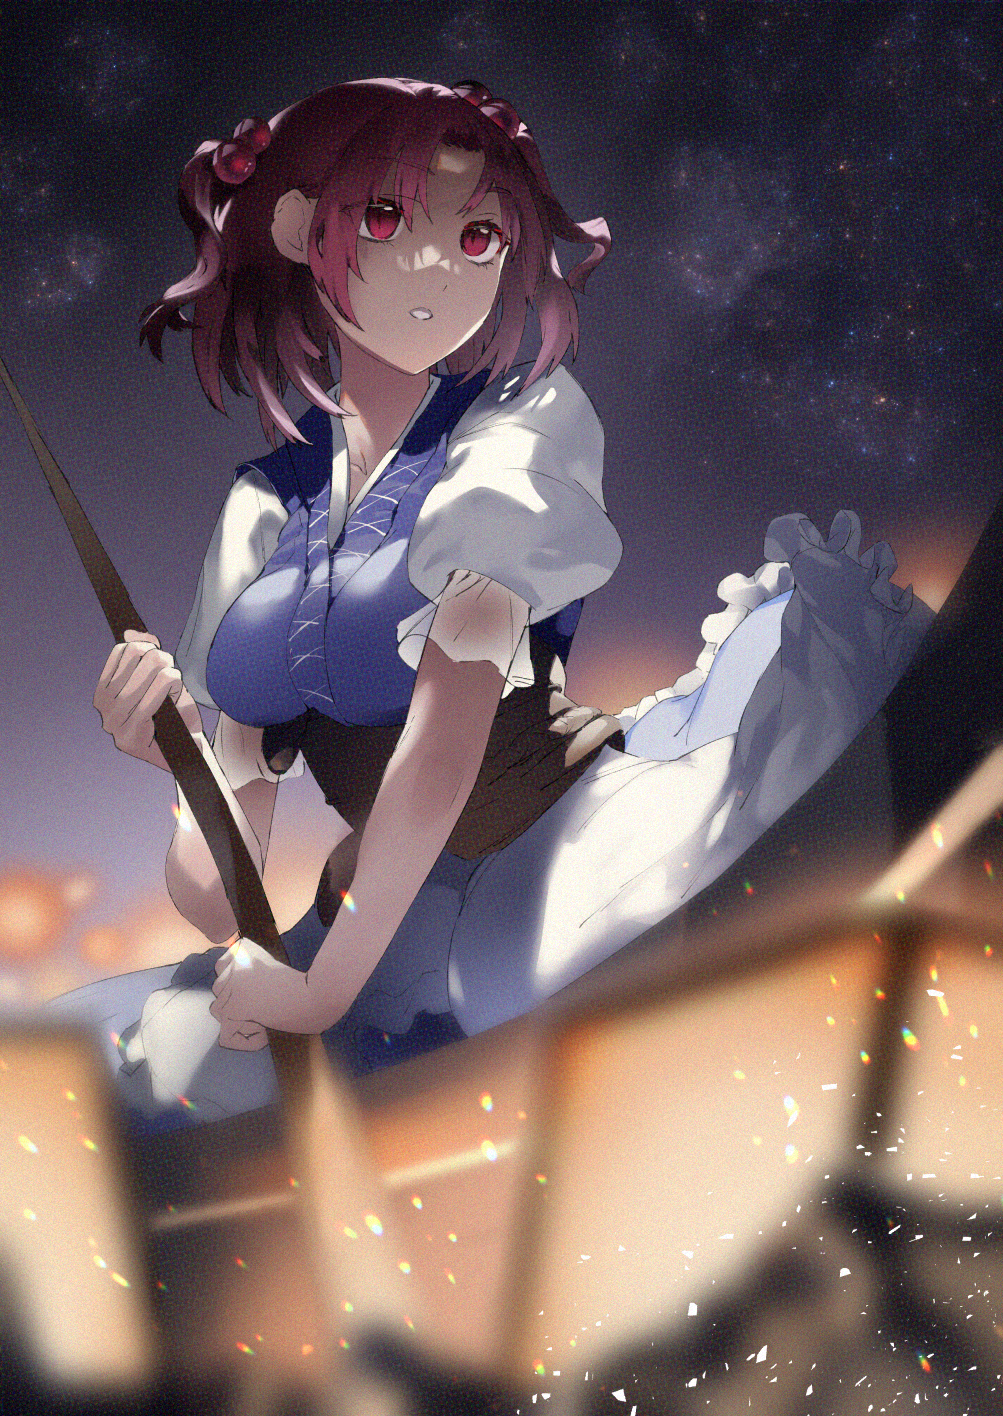 1girl asuzemu bangs blue_kimono blurry blurry_foreground boat breasts dress embers frilled_sleeves frills from_side hair_bobbles hair_ornament highres japanese_clothes kimono lantern layered_clothing looking_afar looking_ahead looking_to_the_side medium_breasts night night_sky onozuka_komachi paper_lantern parted_bangs parted_lips puffy_short_sleeves puffy_sleeves red_eyes redhead rowing short_hair short_sleeves skirt sky solo star_(sky) starry_sky touhou two_side_up watercraft white_dress white_skirt